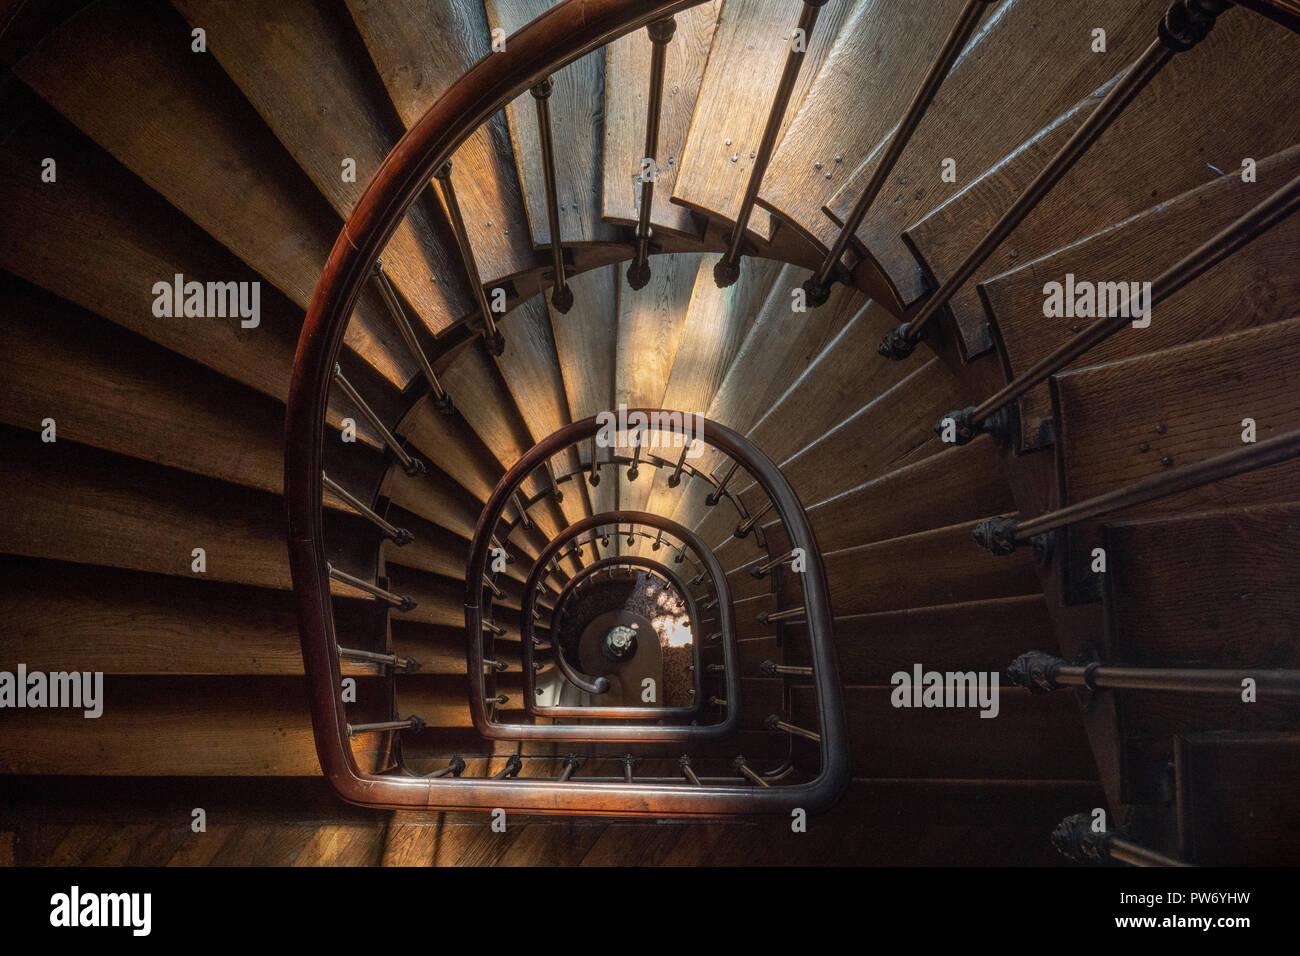 Wooden Spiral Staircase, Paris, France - Stock Image